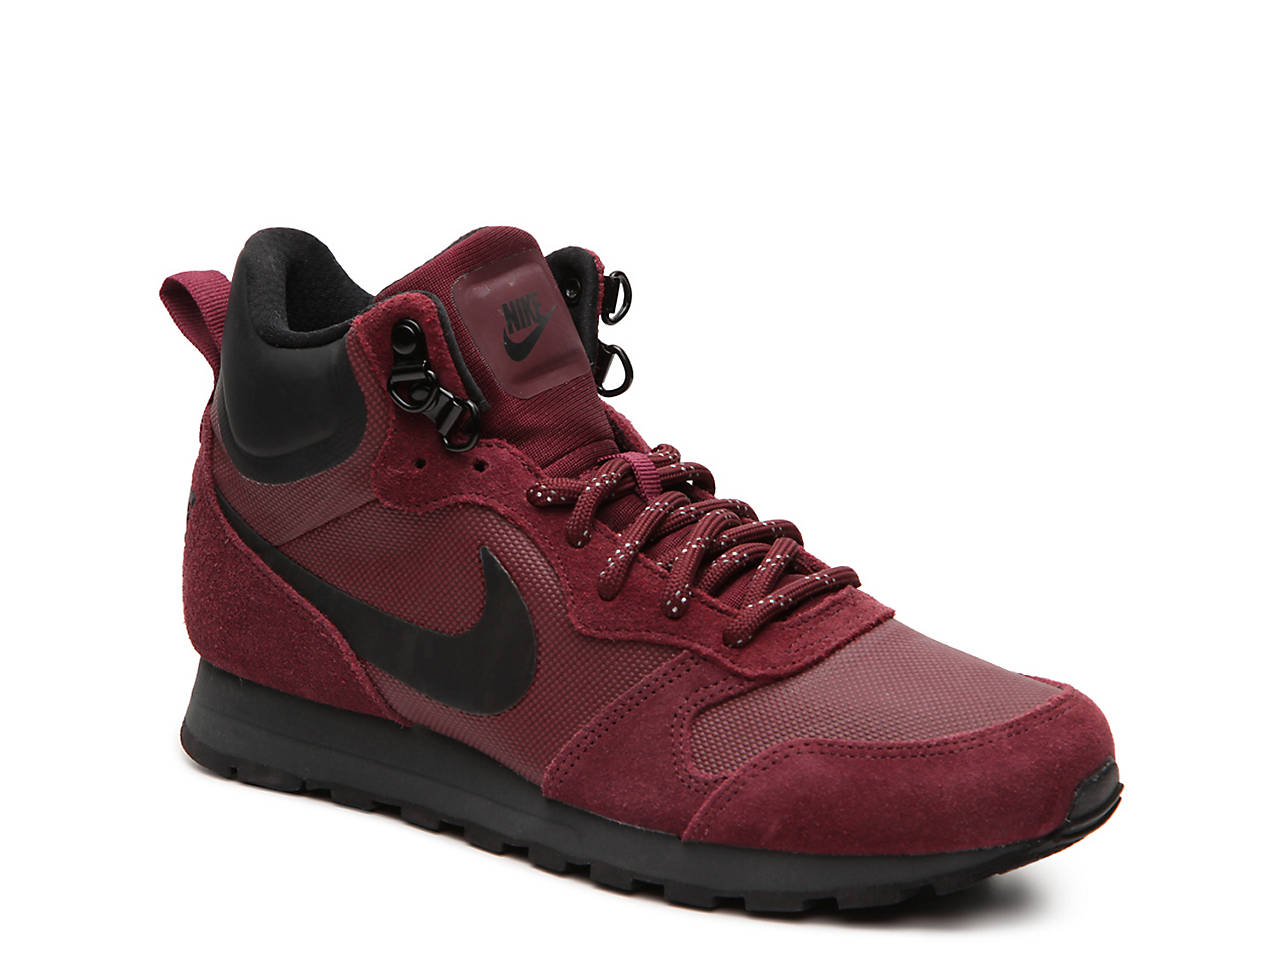 bceb35d9456 Nike MD Runner 2 Mid-Top Sneaker - Women s Women s Shoes